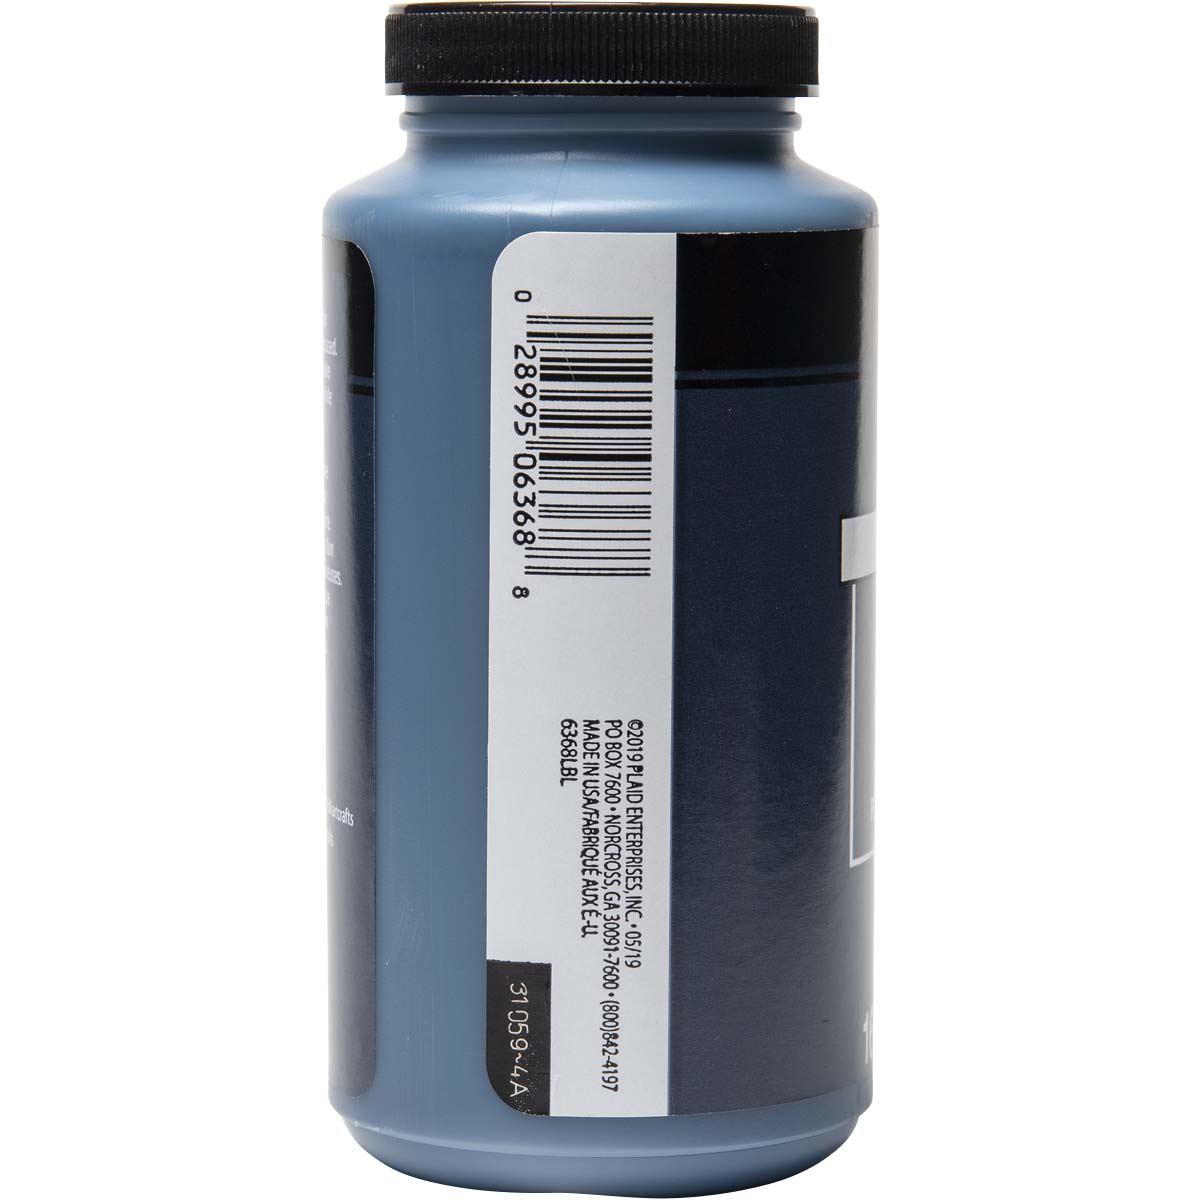 FolkArt ® Acrylic Colors - Navy Blue, 16 oz.